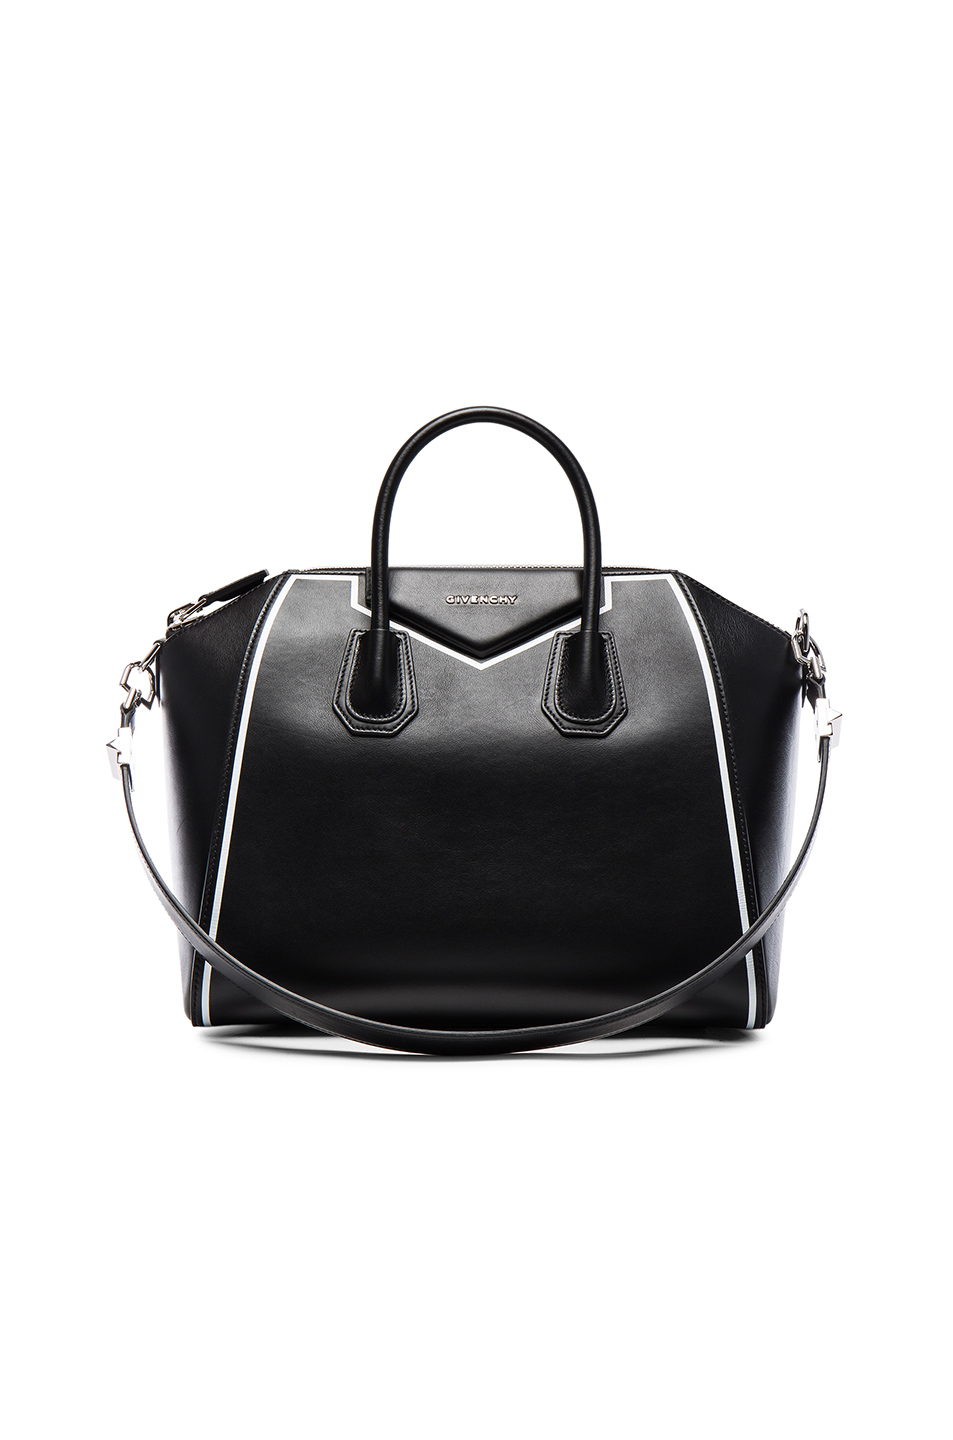 23a95c1a8447 Givenchy Medium Antigona Leather Bag W Stitching